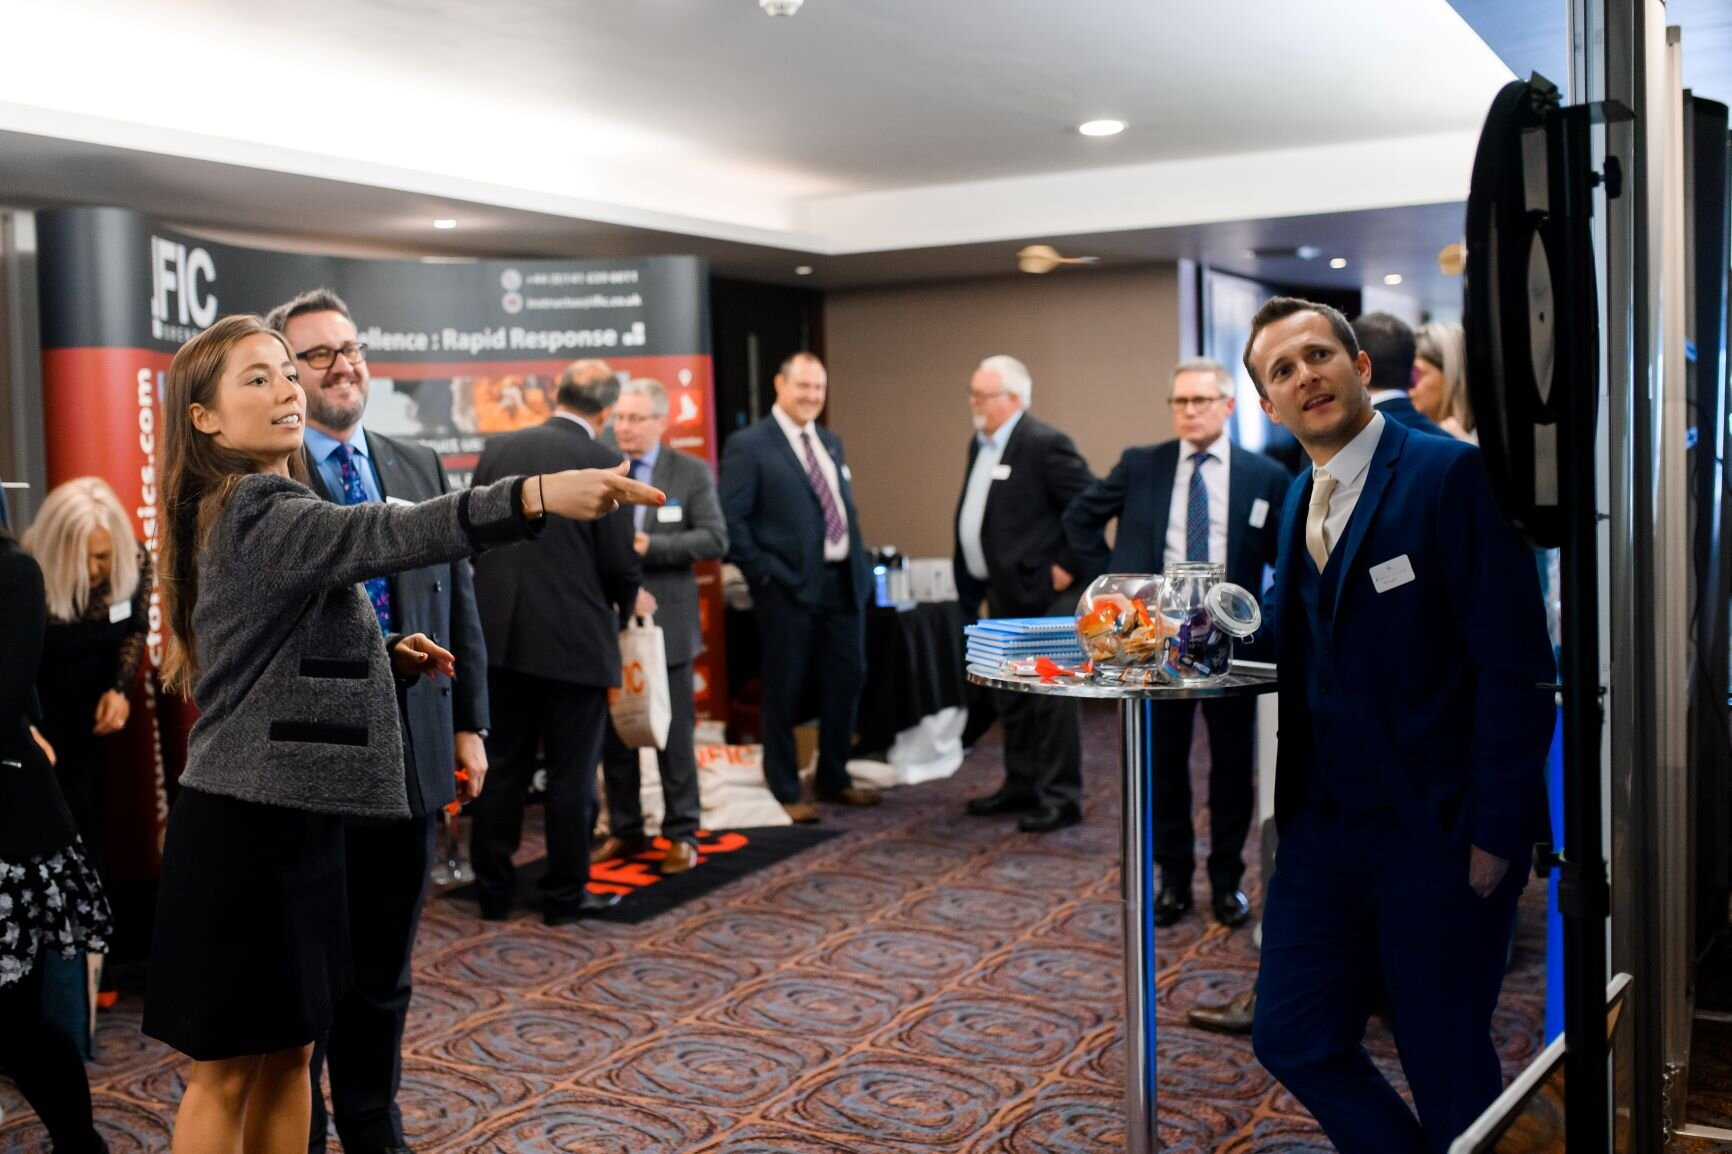 Exhibitor List - Our exhibition hall will be the networking hub of the conference and we are delighted that so many sponsors will be in attendance. Check out who will be there and what activities they will have on their stand!